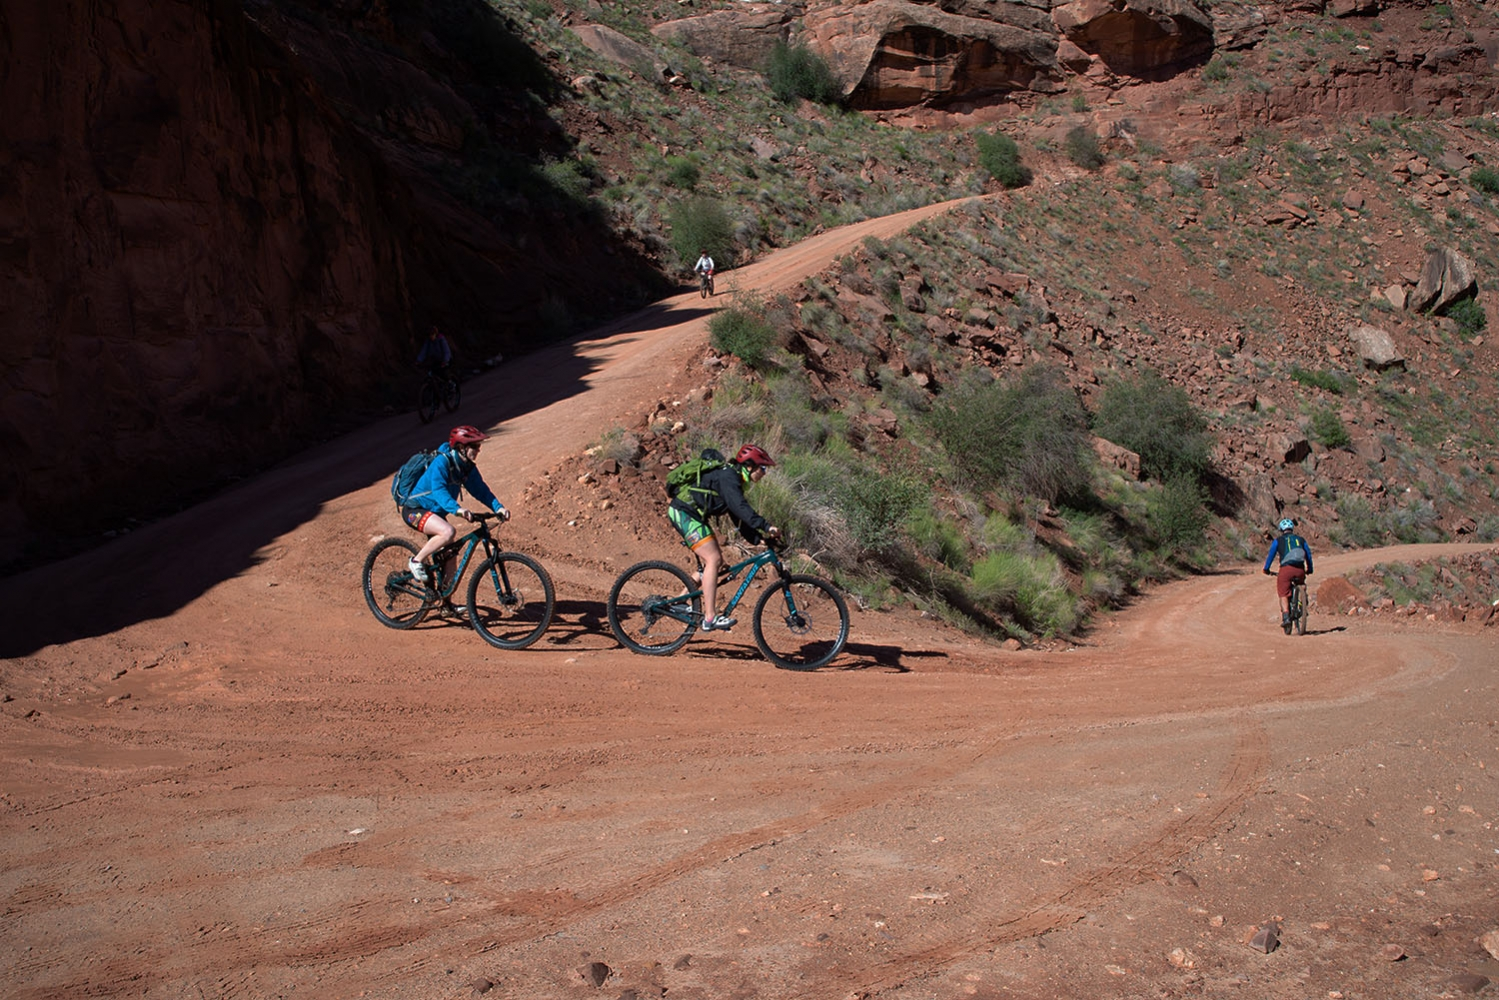 Canyonlands-National-Park-Full-Day-Guided-Mtb-Tour-Turn-1-Shafer-1